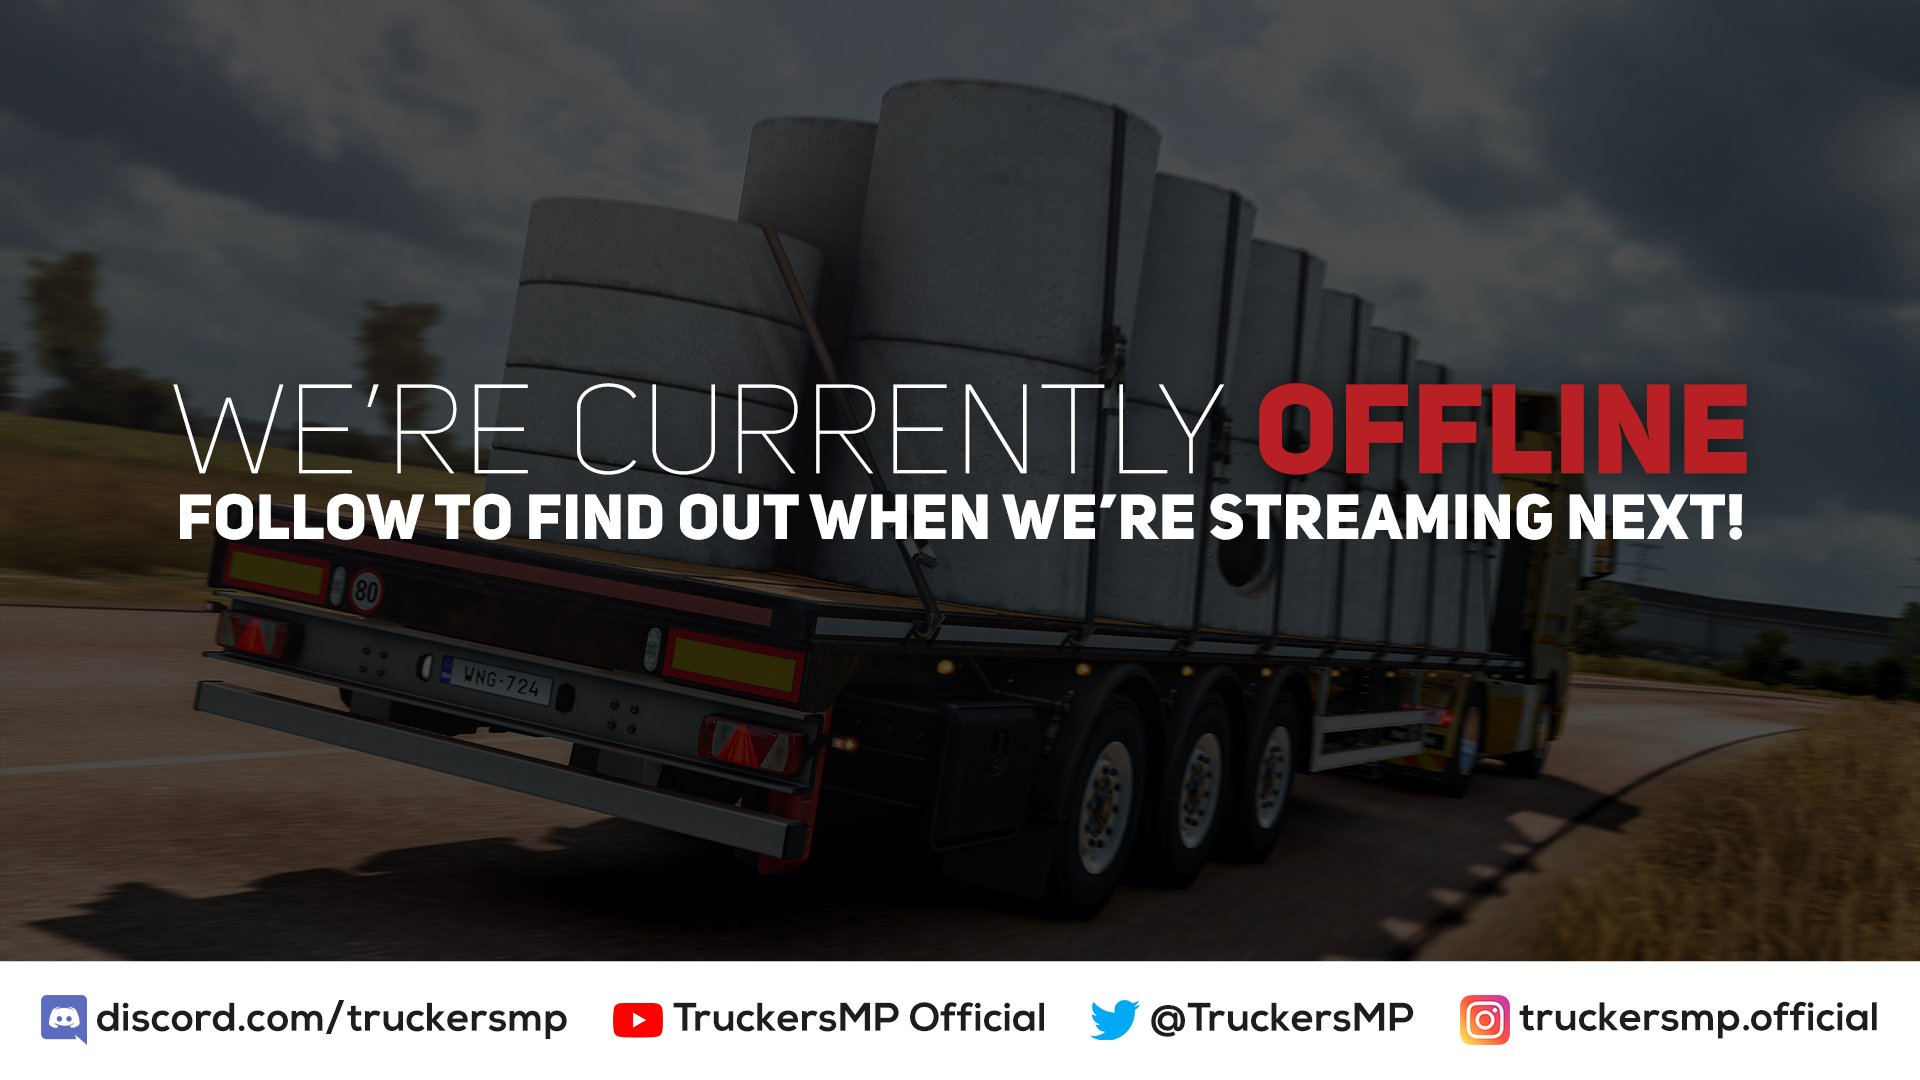 TruckersMP_Official